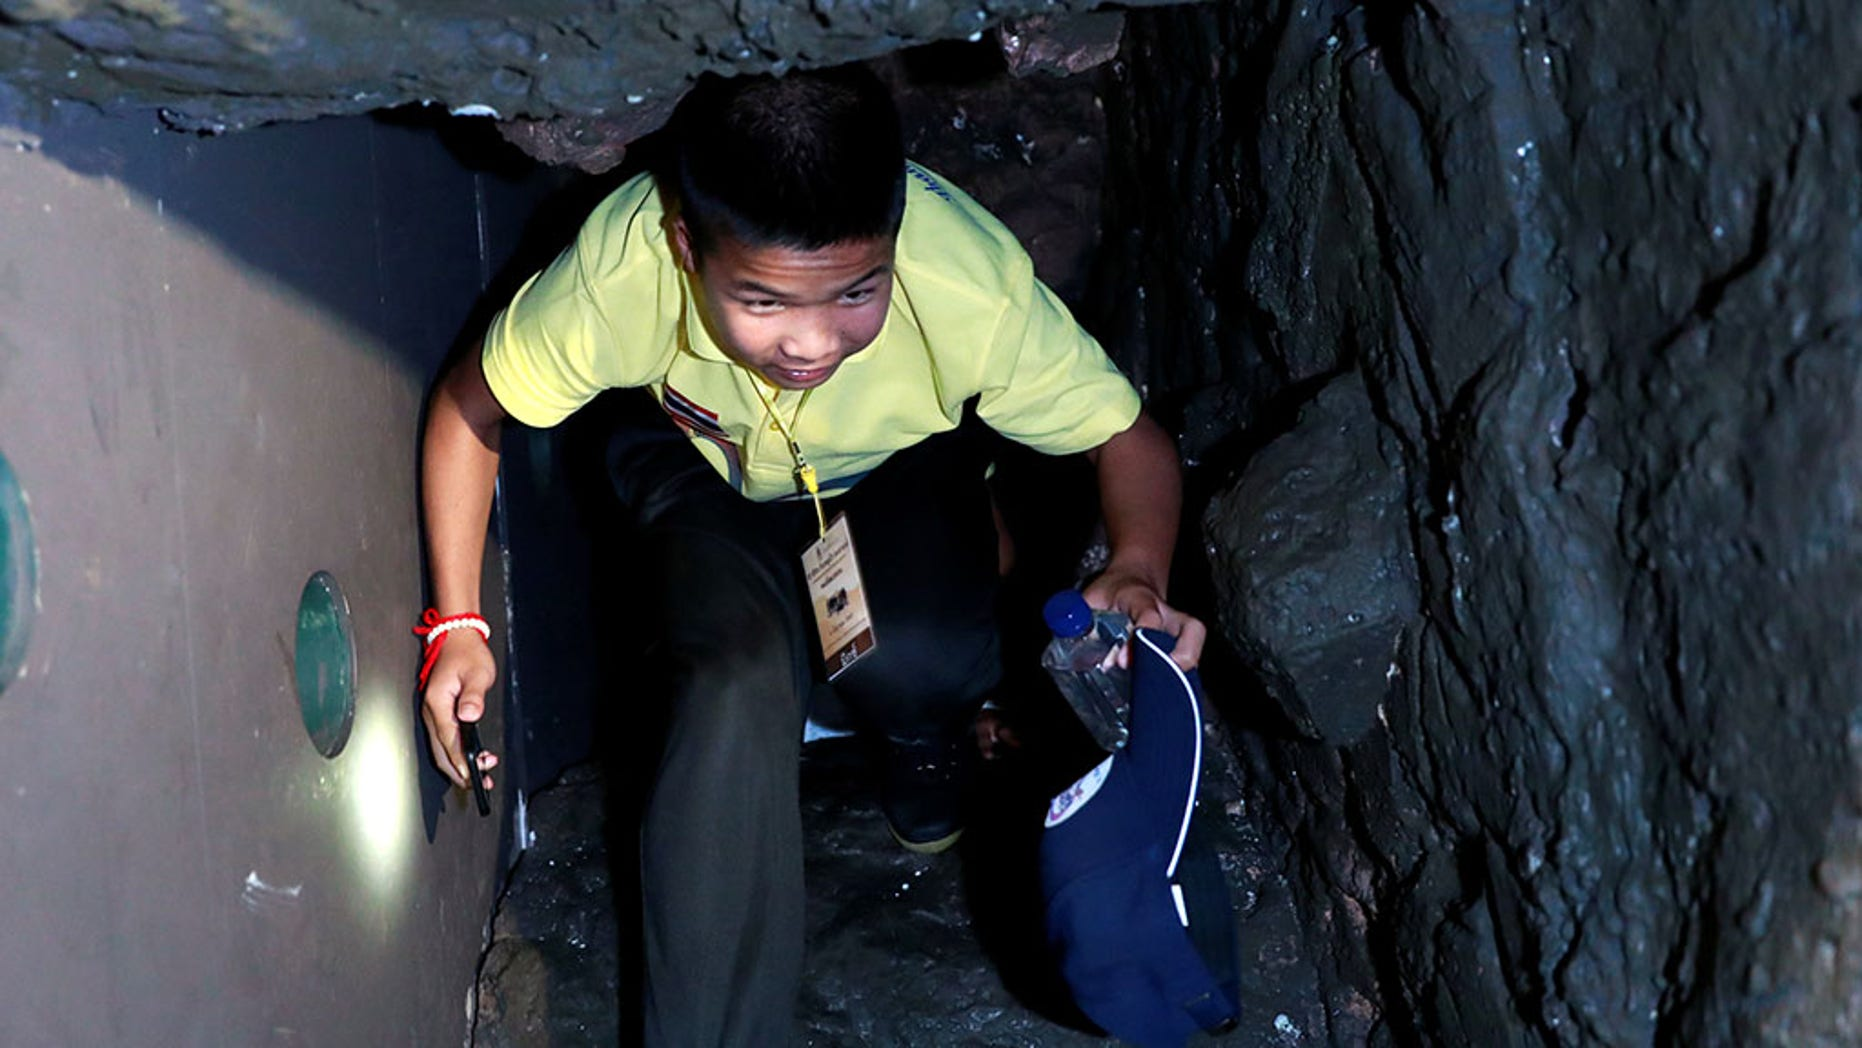 A member of the soccer team maneuvering through the fake cave tunnel on Thursday.